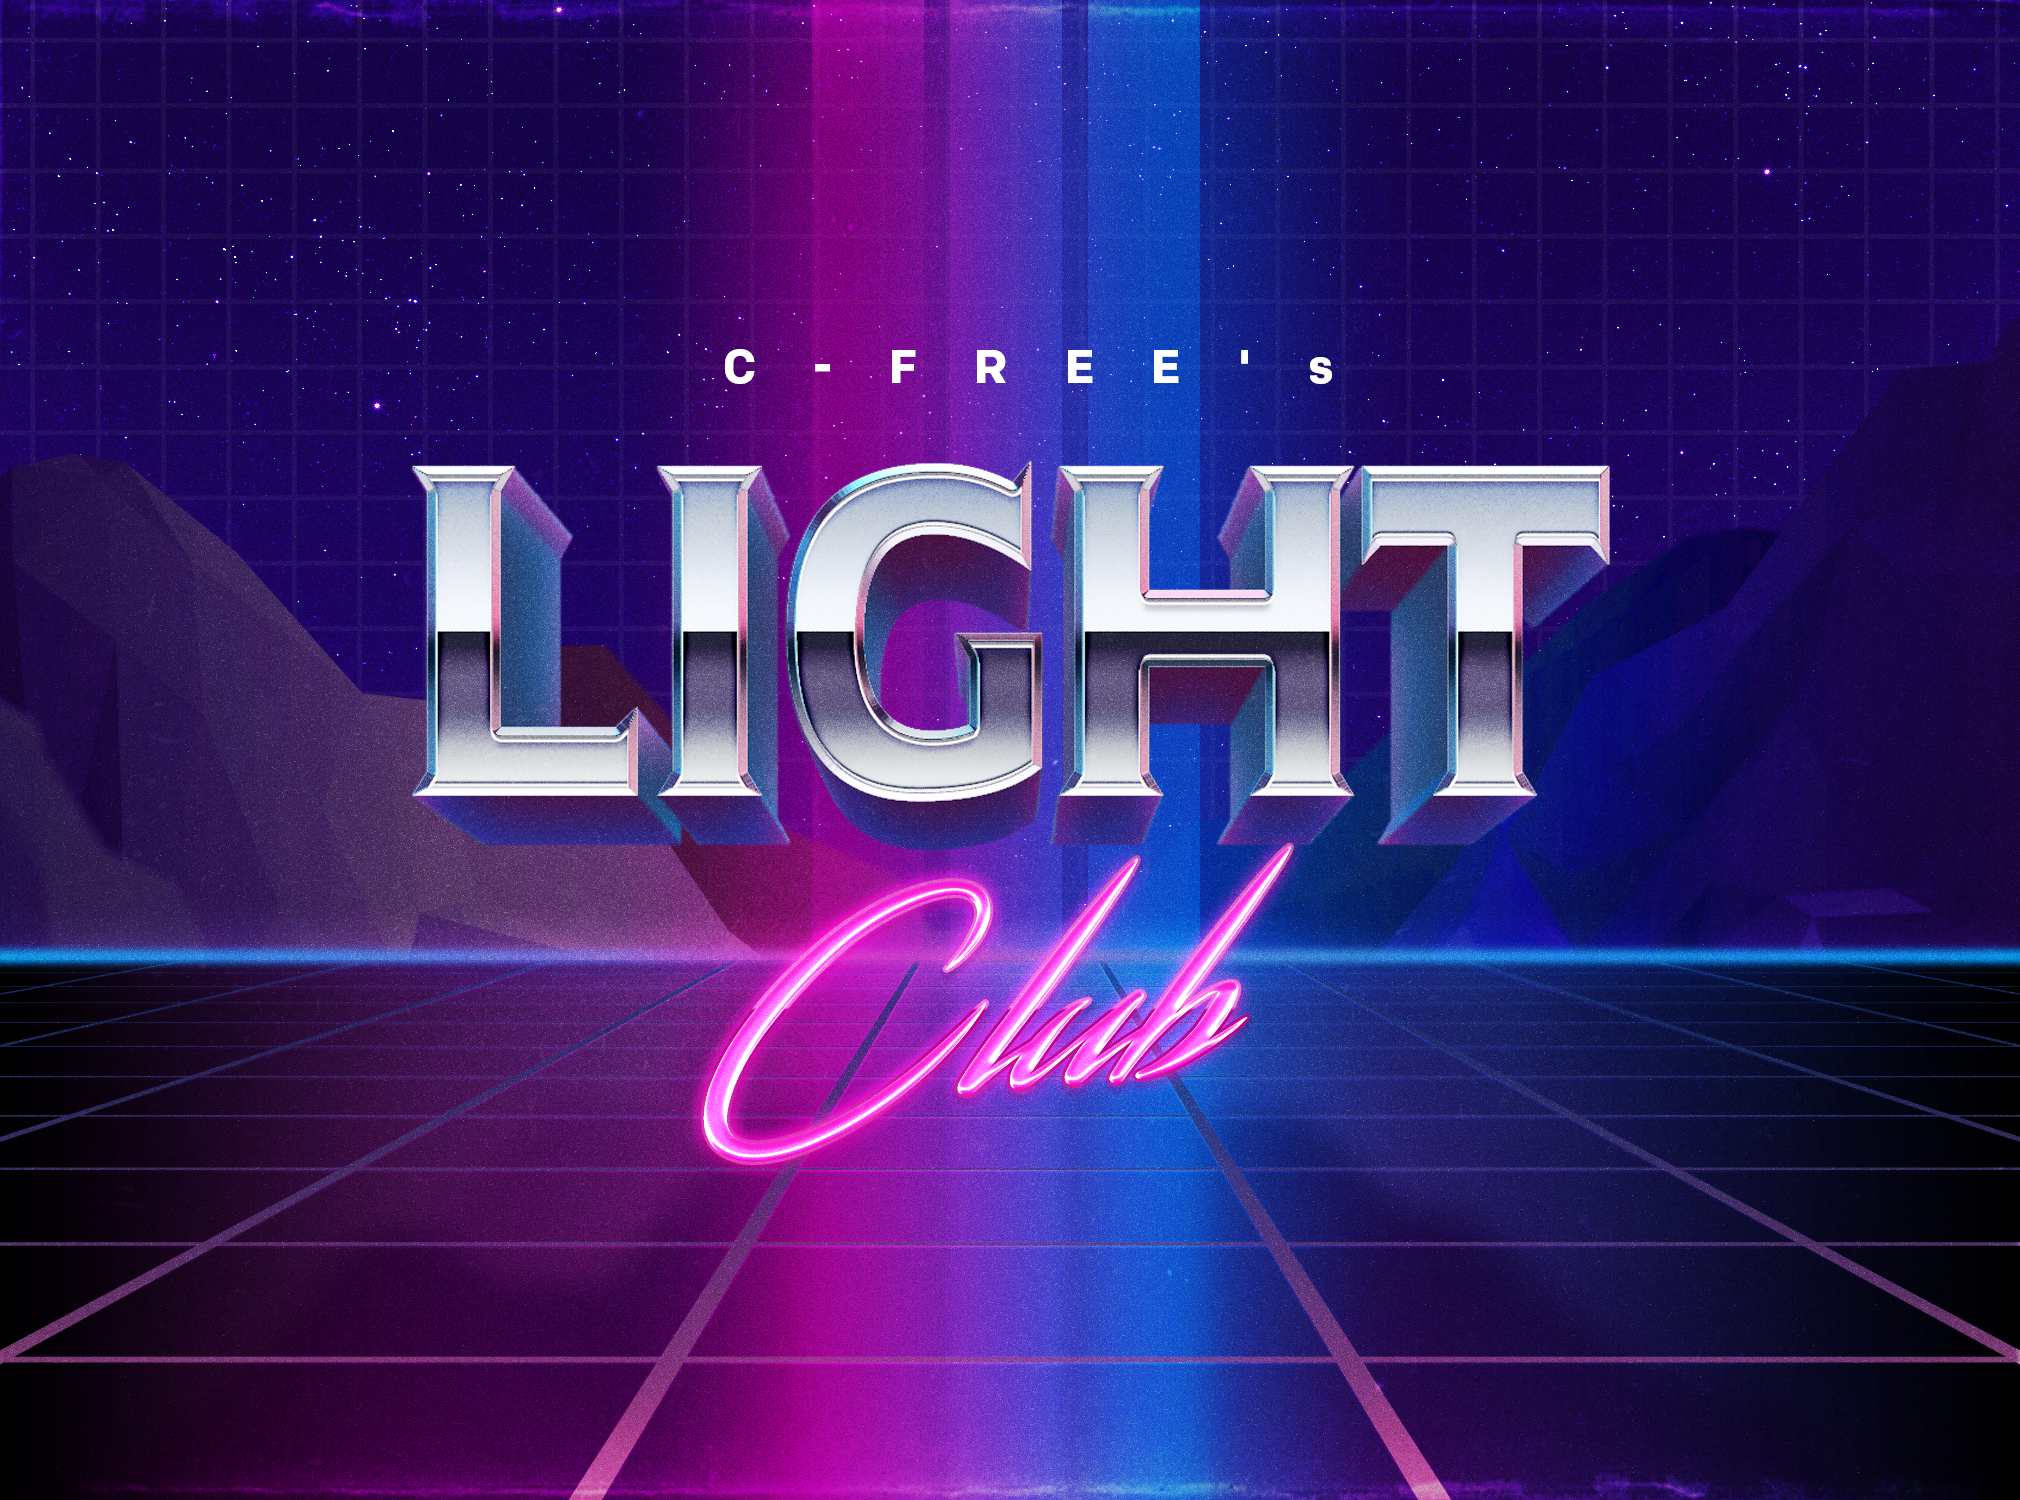 Light Club.jpg